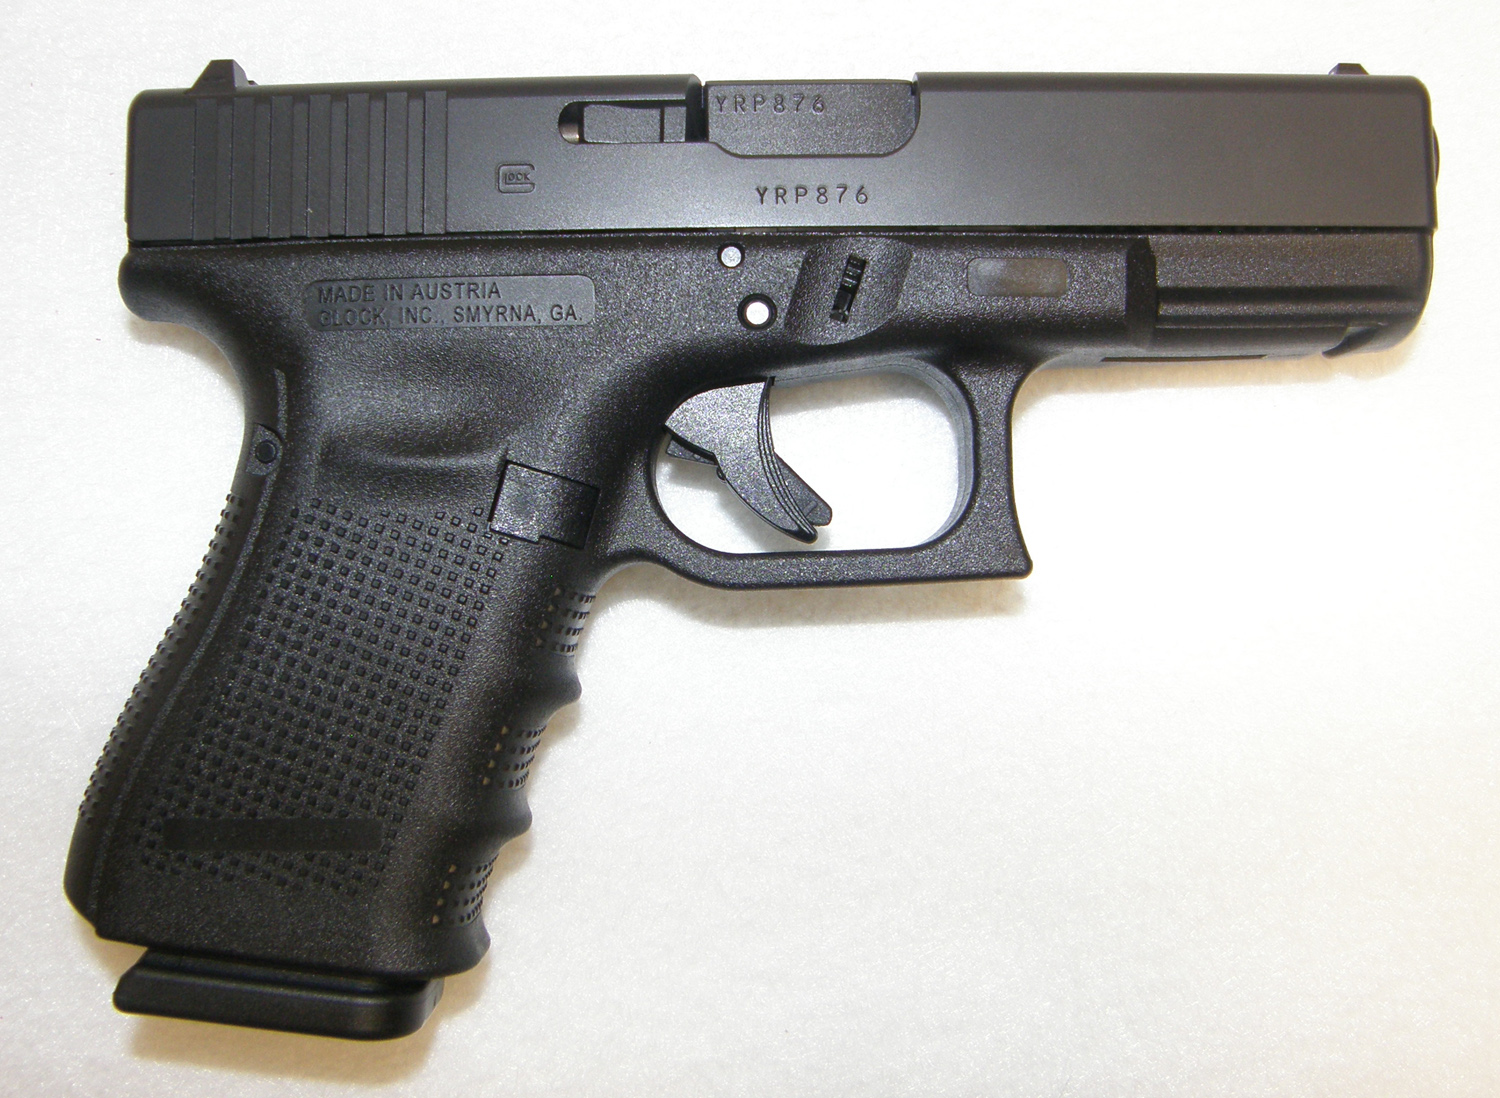 Glock 19 Gen 4 9mm Compact Pistol (New) | Rare Collectible ...